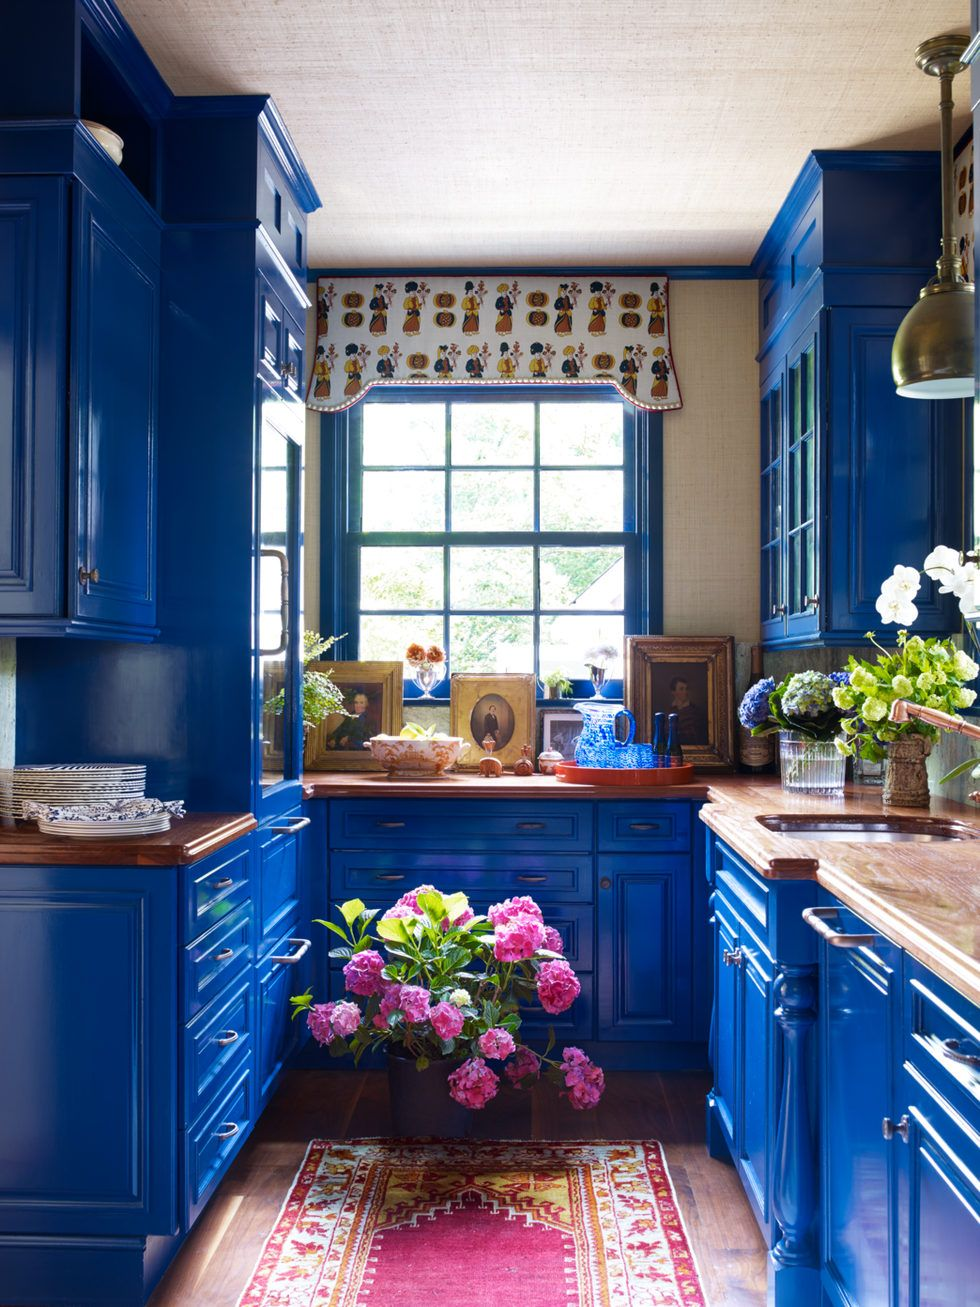 27 Energizing Kitchen Paint Colors To Brighten Your Home Bohemian Kitchen Blue Kitchen Cabinets Home Kitchens